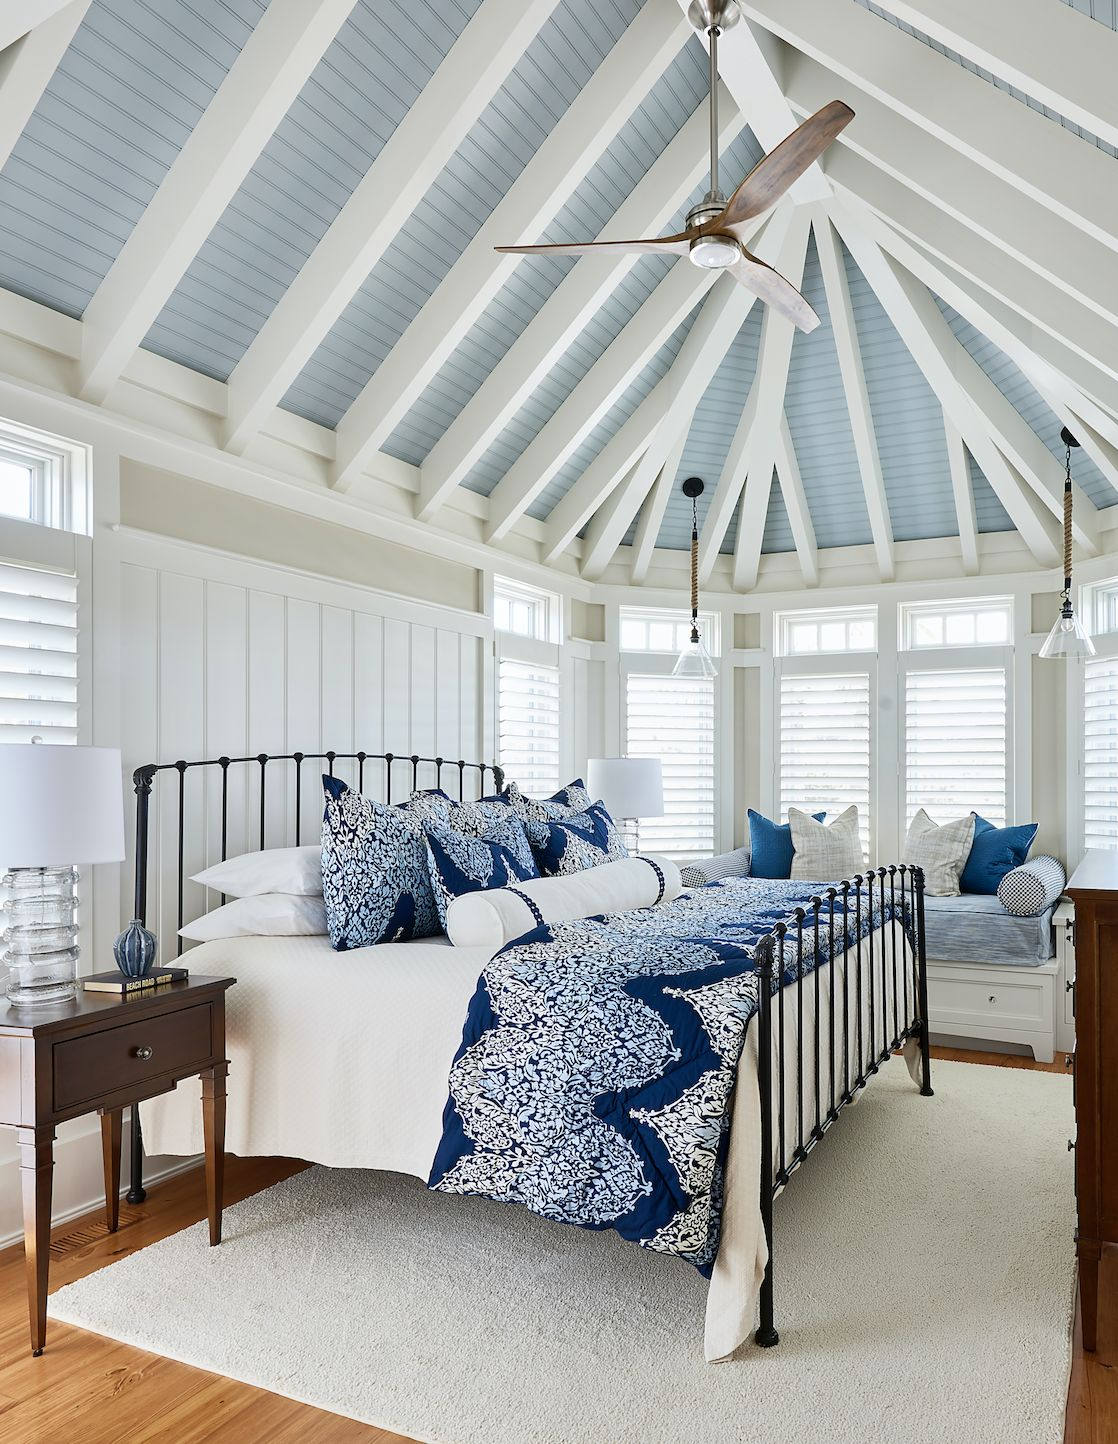 40 Beach Themed Bedrooms to Take You Away - photo#28